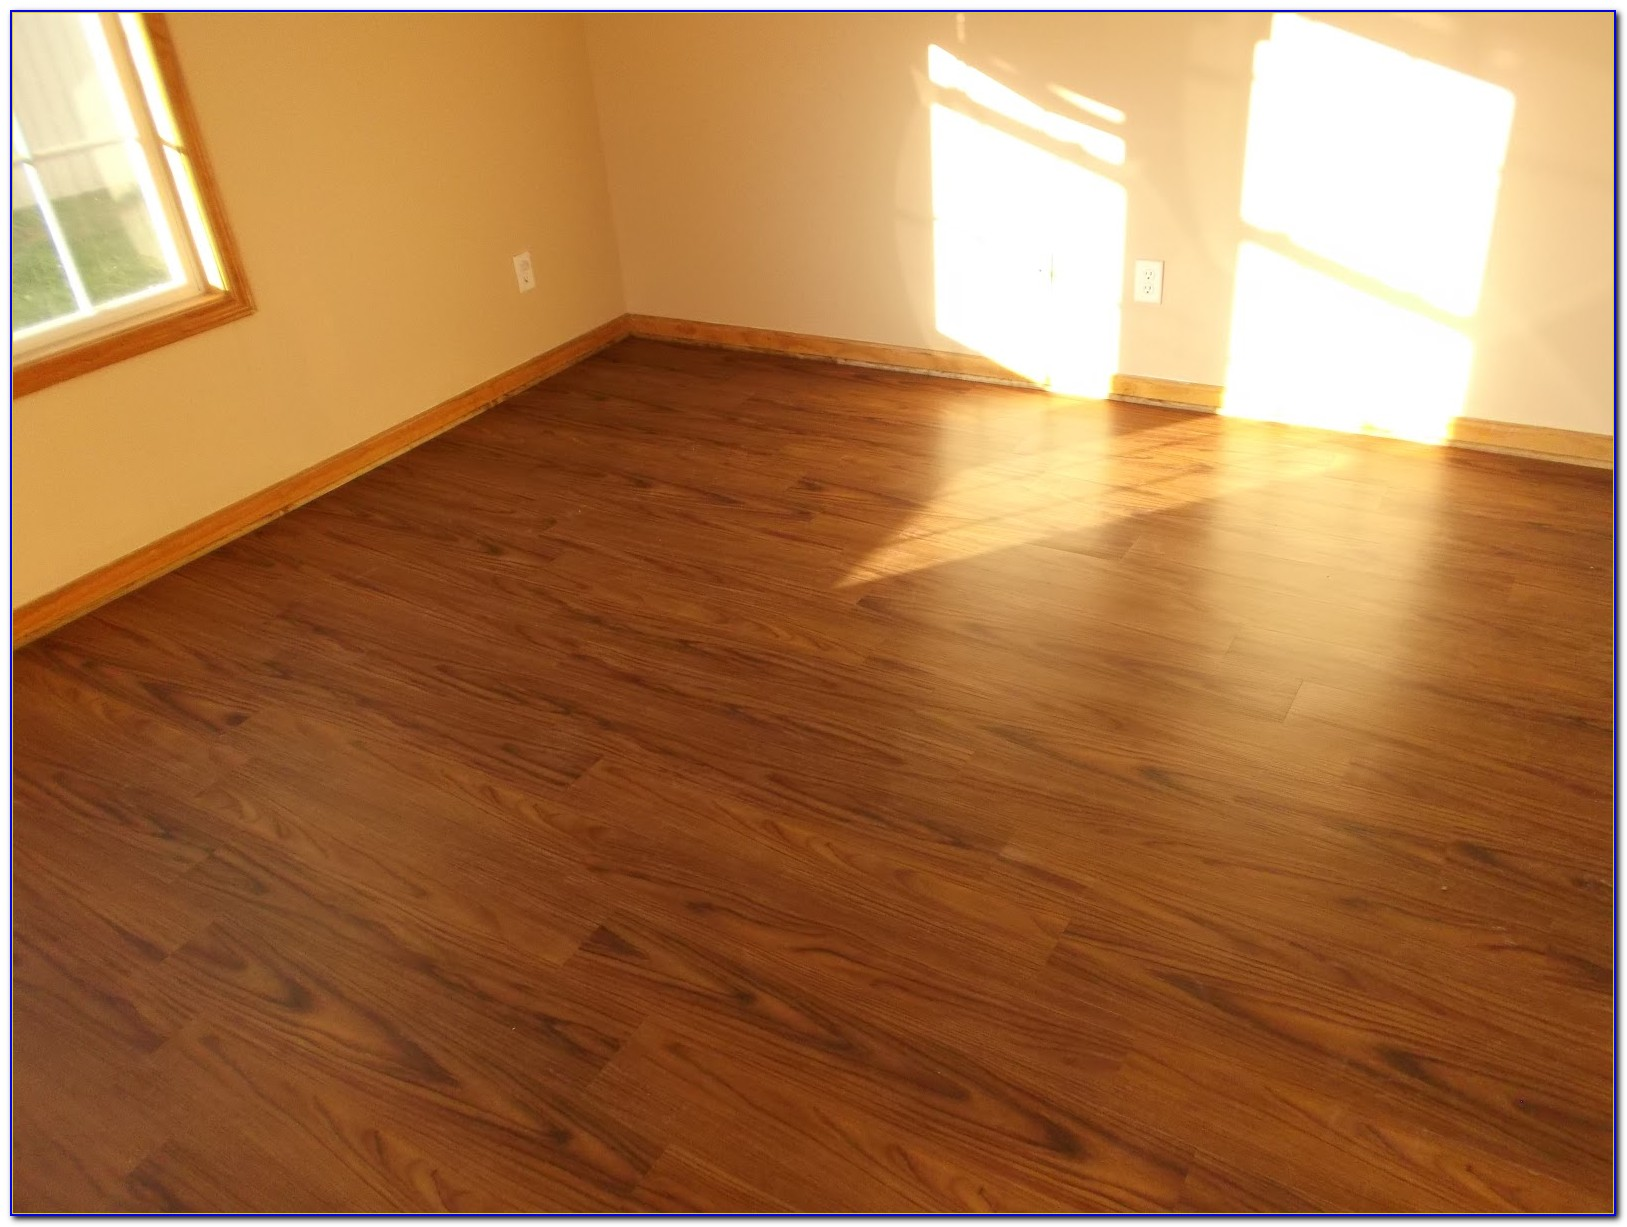 Trafficmaster Allure Vinyl Plank Flooring Country Pine